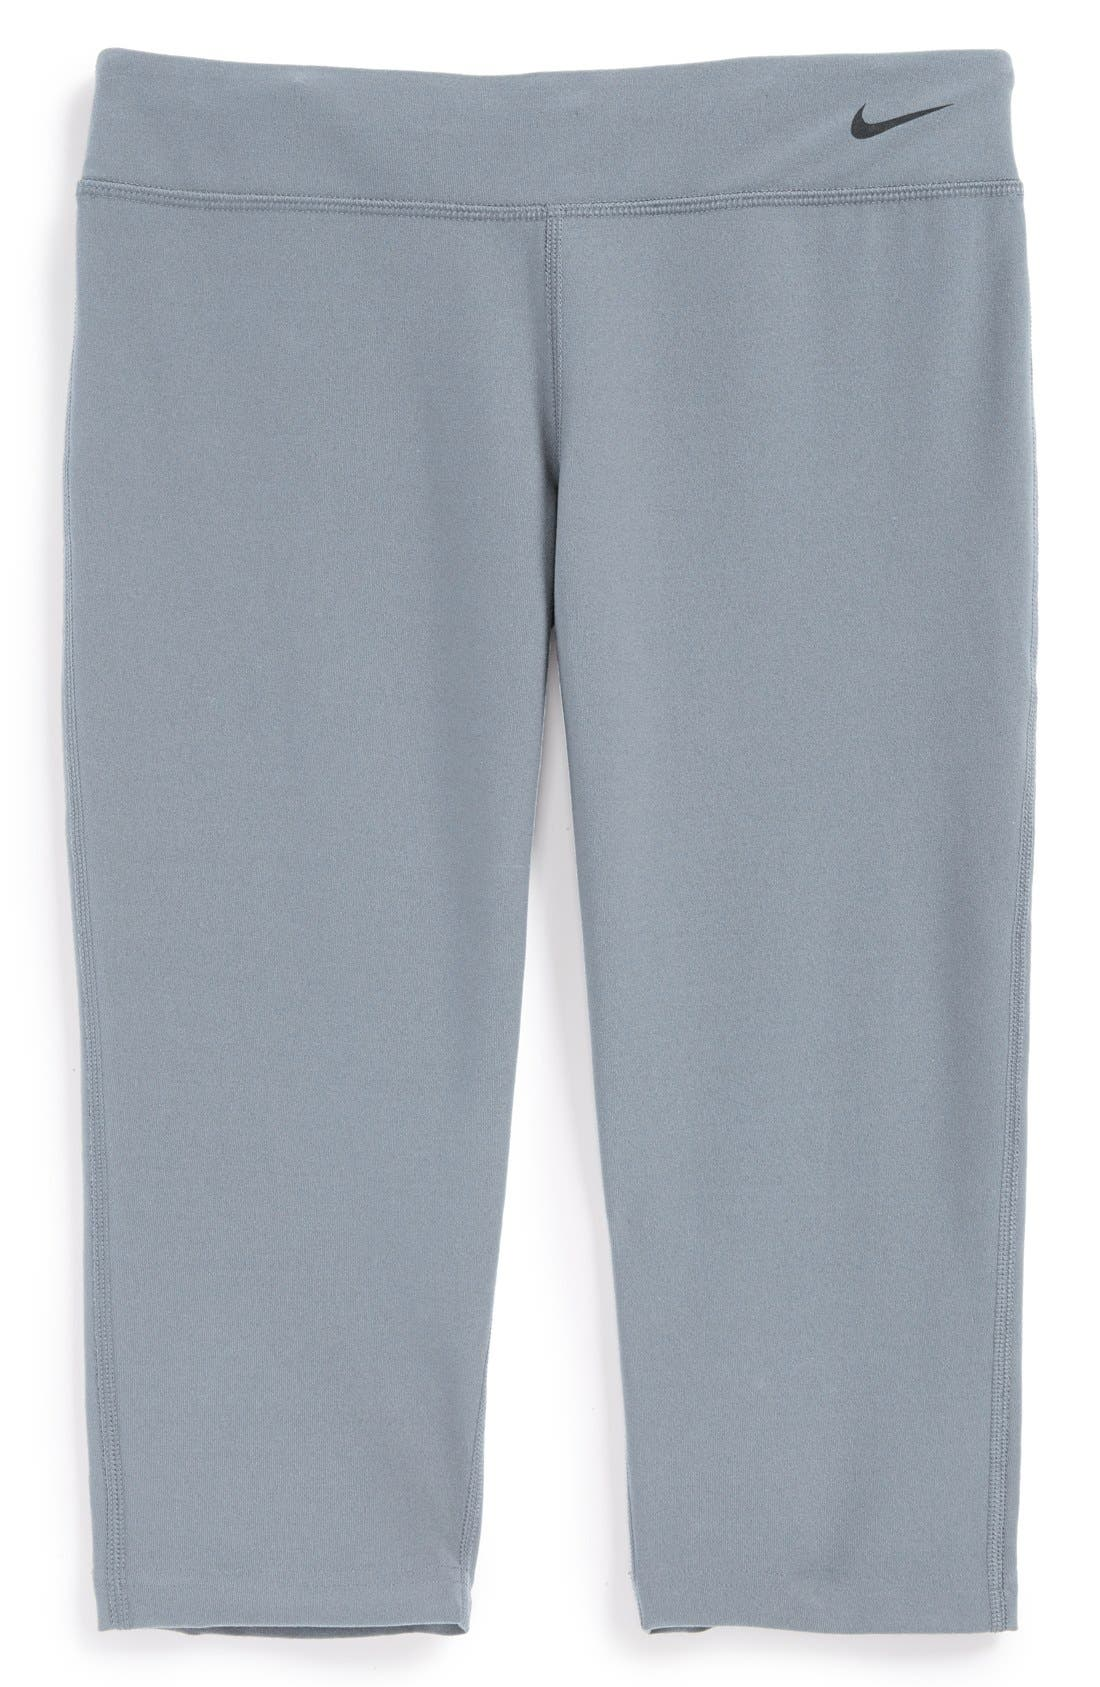 Alternate Image 1 Selected - Nike 'Legend - Tight Fit' Capris (Big Girls)